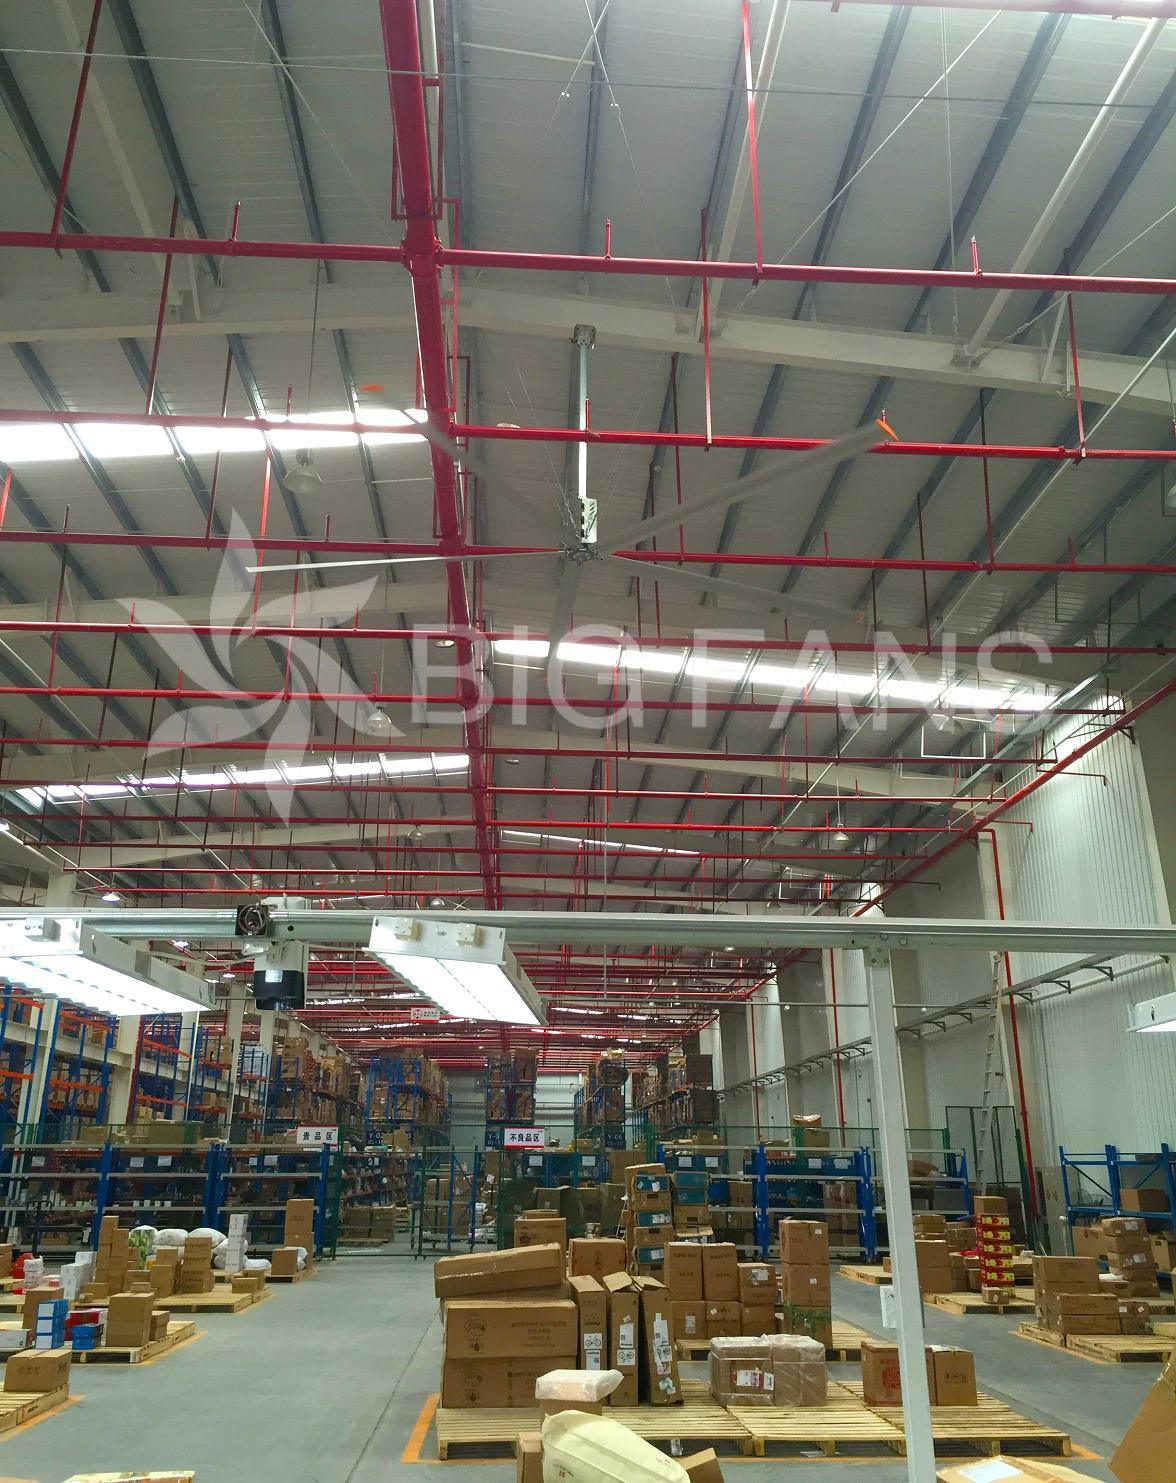 7.4m/24.3FT Use Ventilating Cooling Hvls Industrial Big Energy-Saving Plant/Warehouse Ceiling Fan